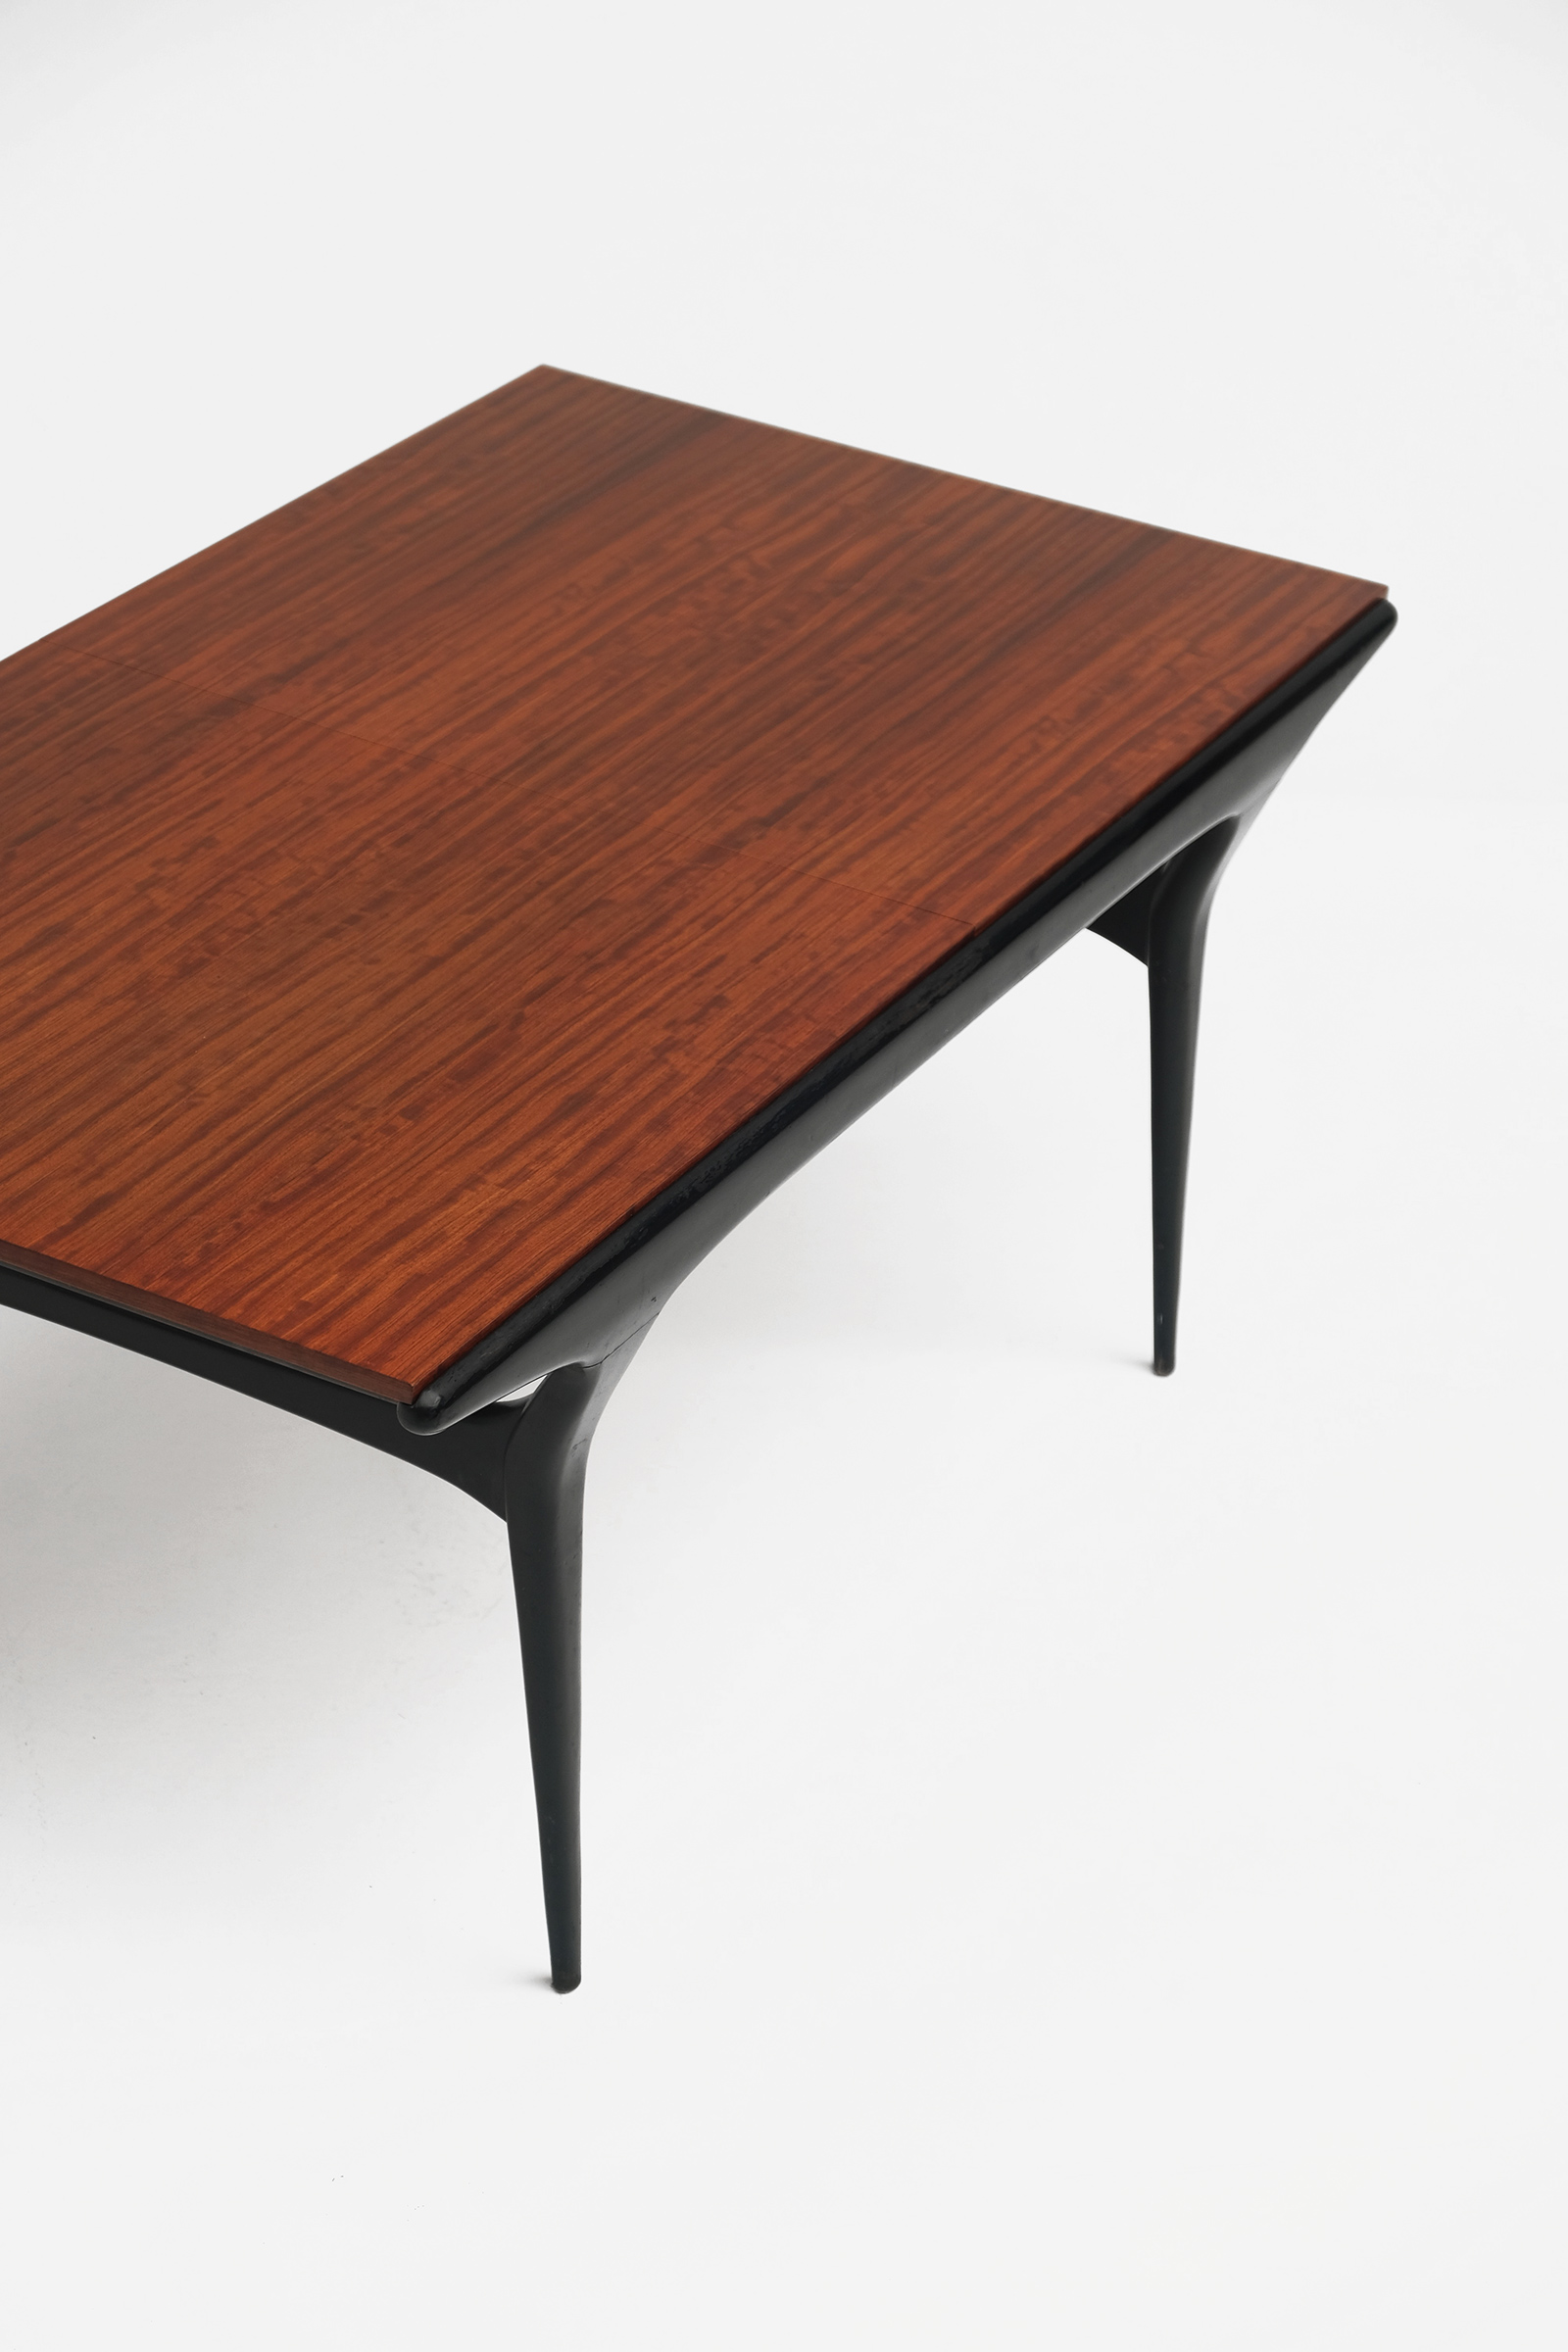 Alfred Hendrickx rare Belform Dining Table 1950simage 10